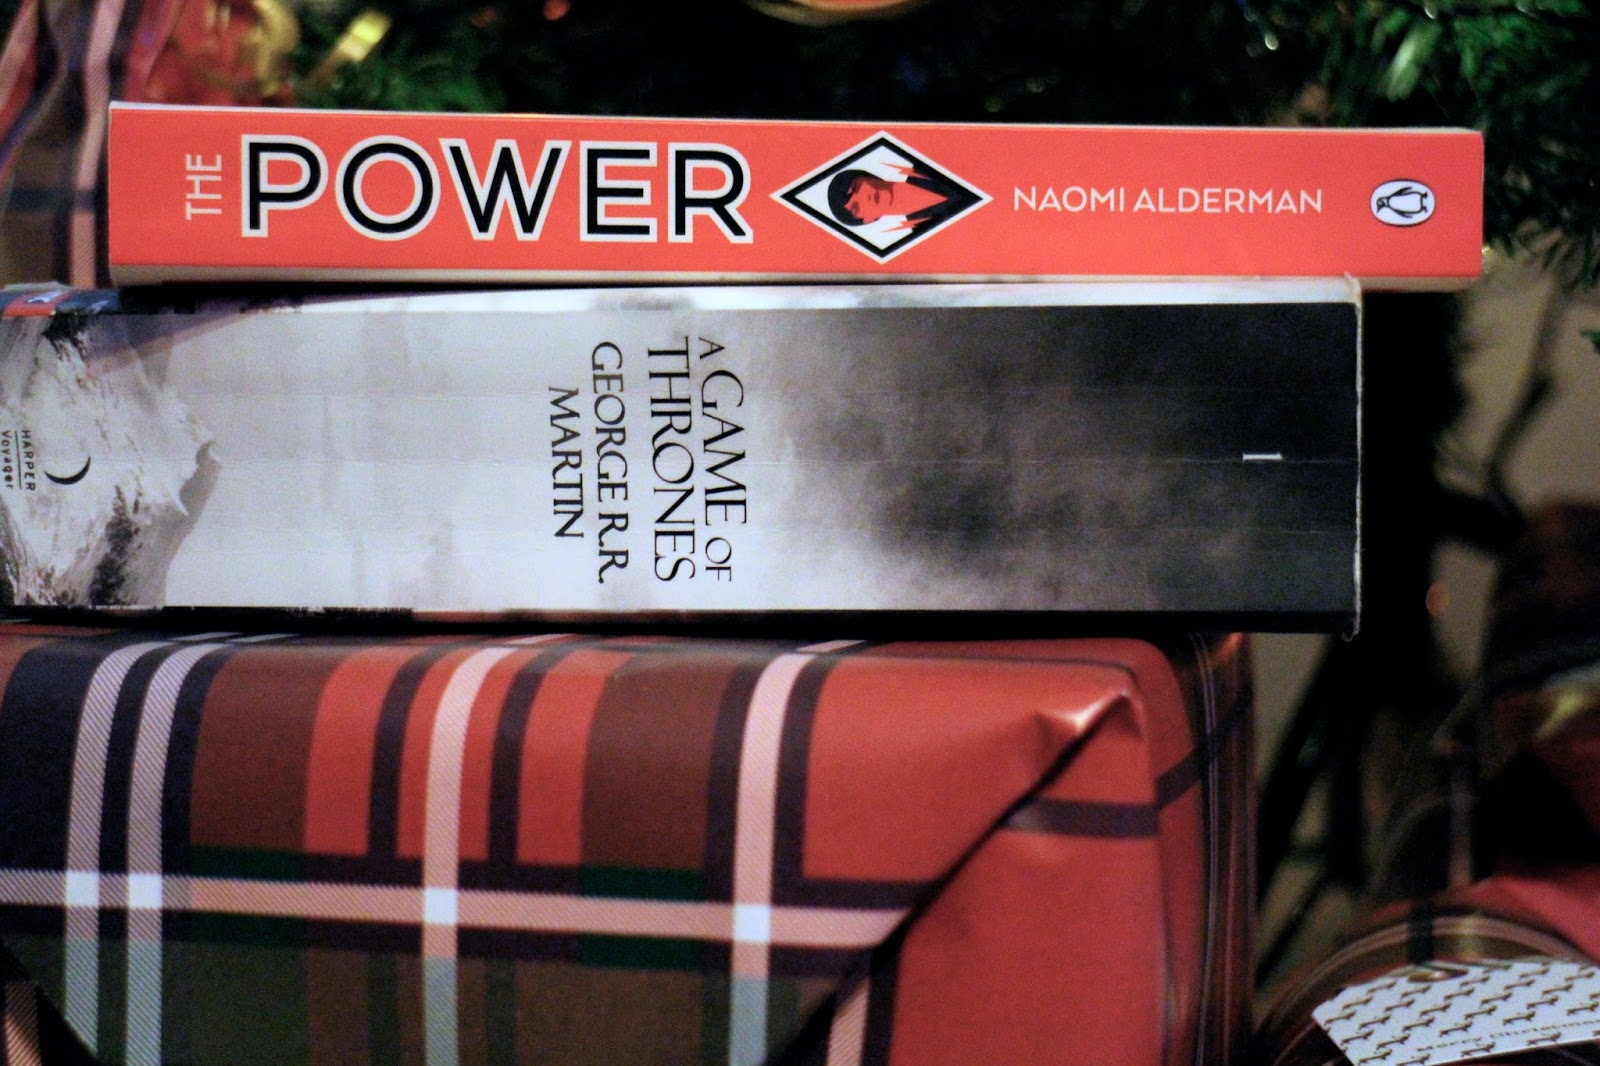 The Power and Game of Thrones books on a Christmas present